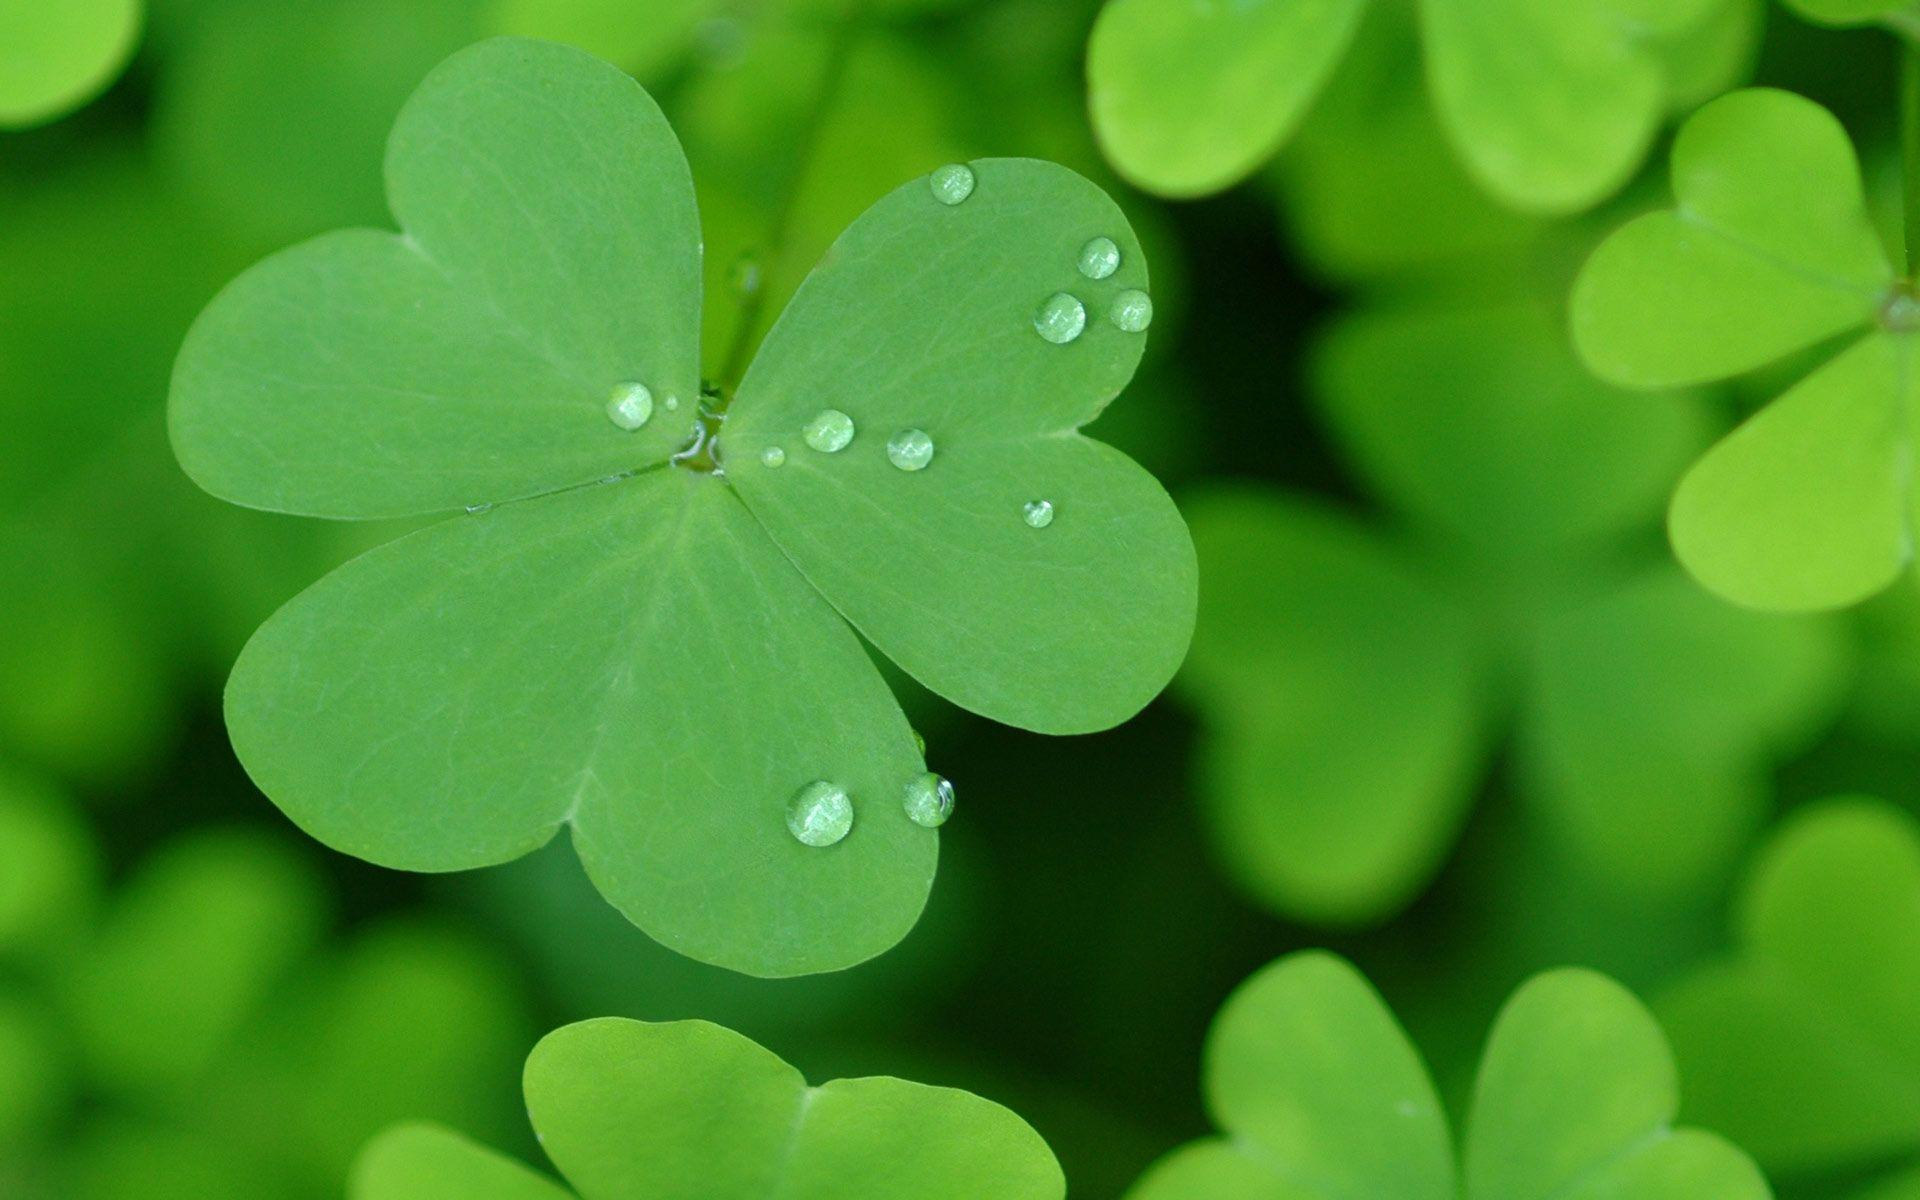 patricks day shamrock background - photo #22